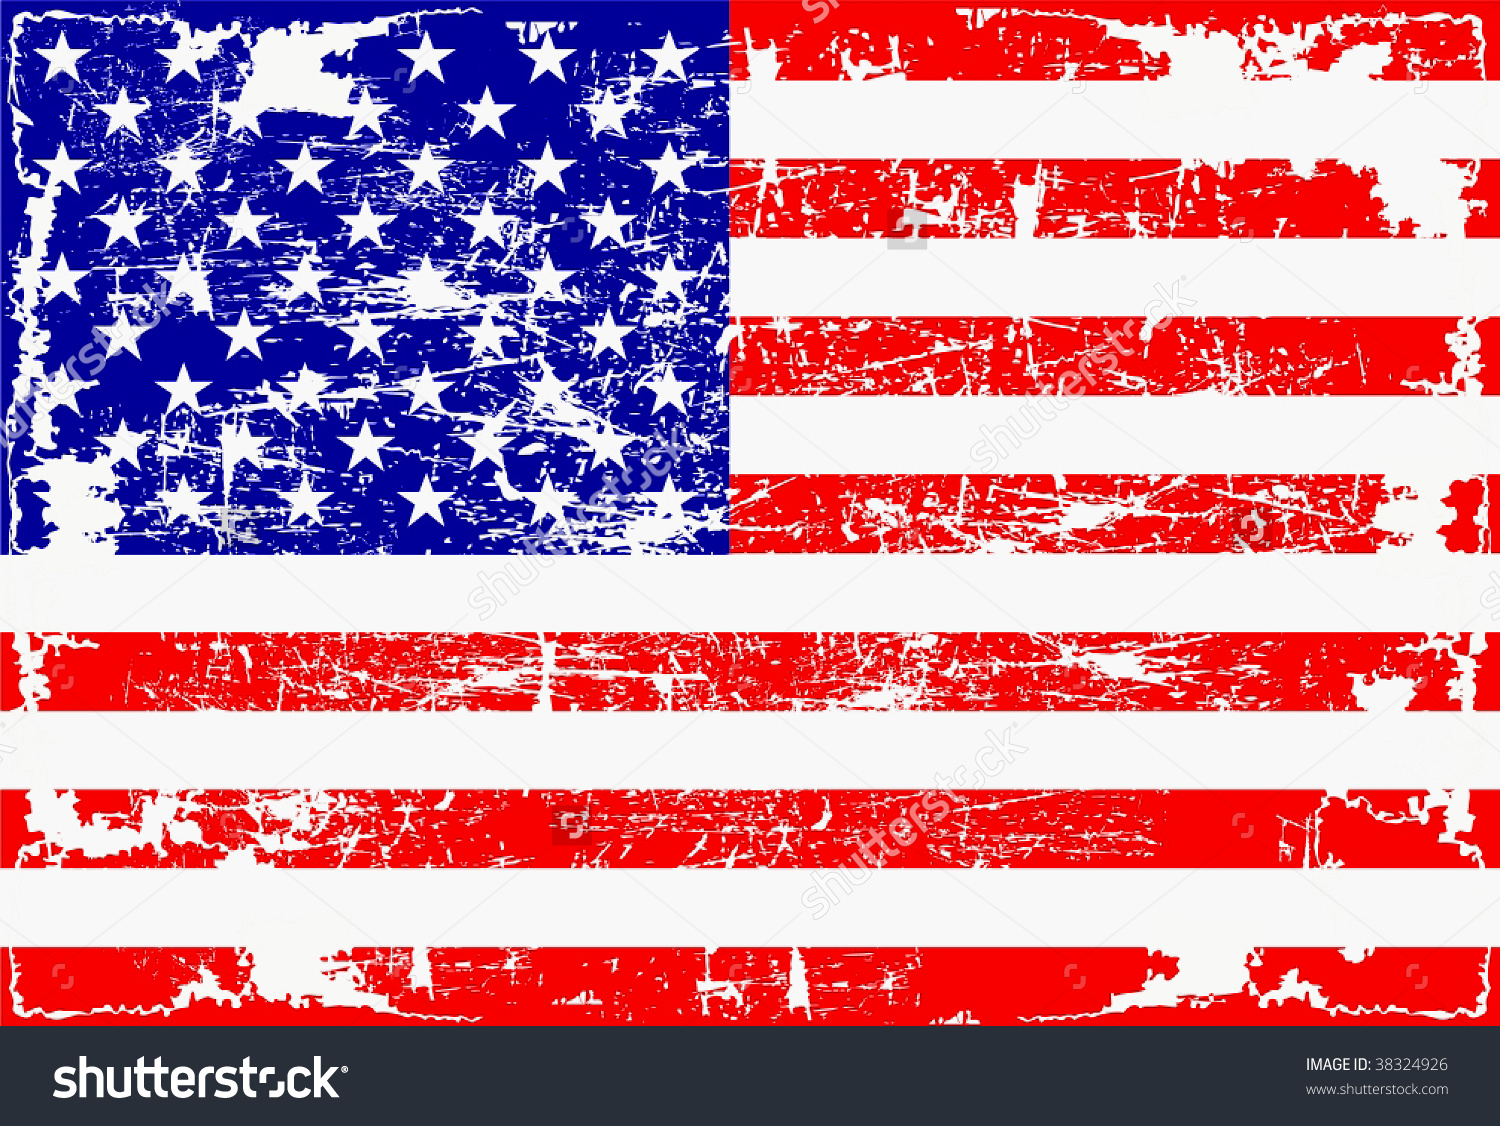 1500x1126 United States Distressed Flag Graphic Black And White Stock